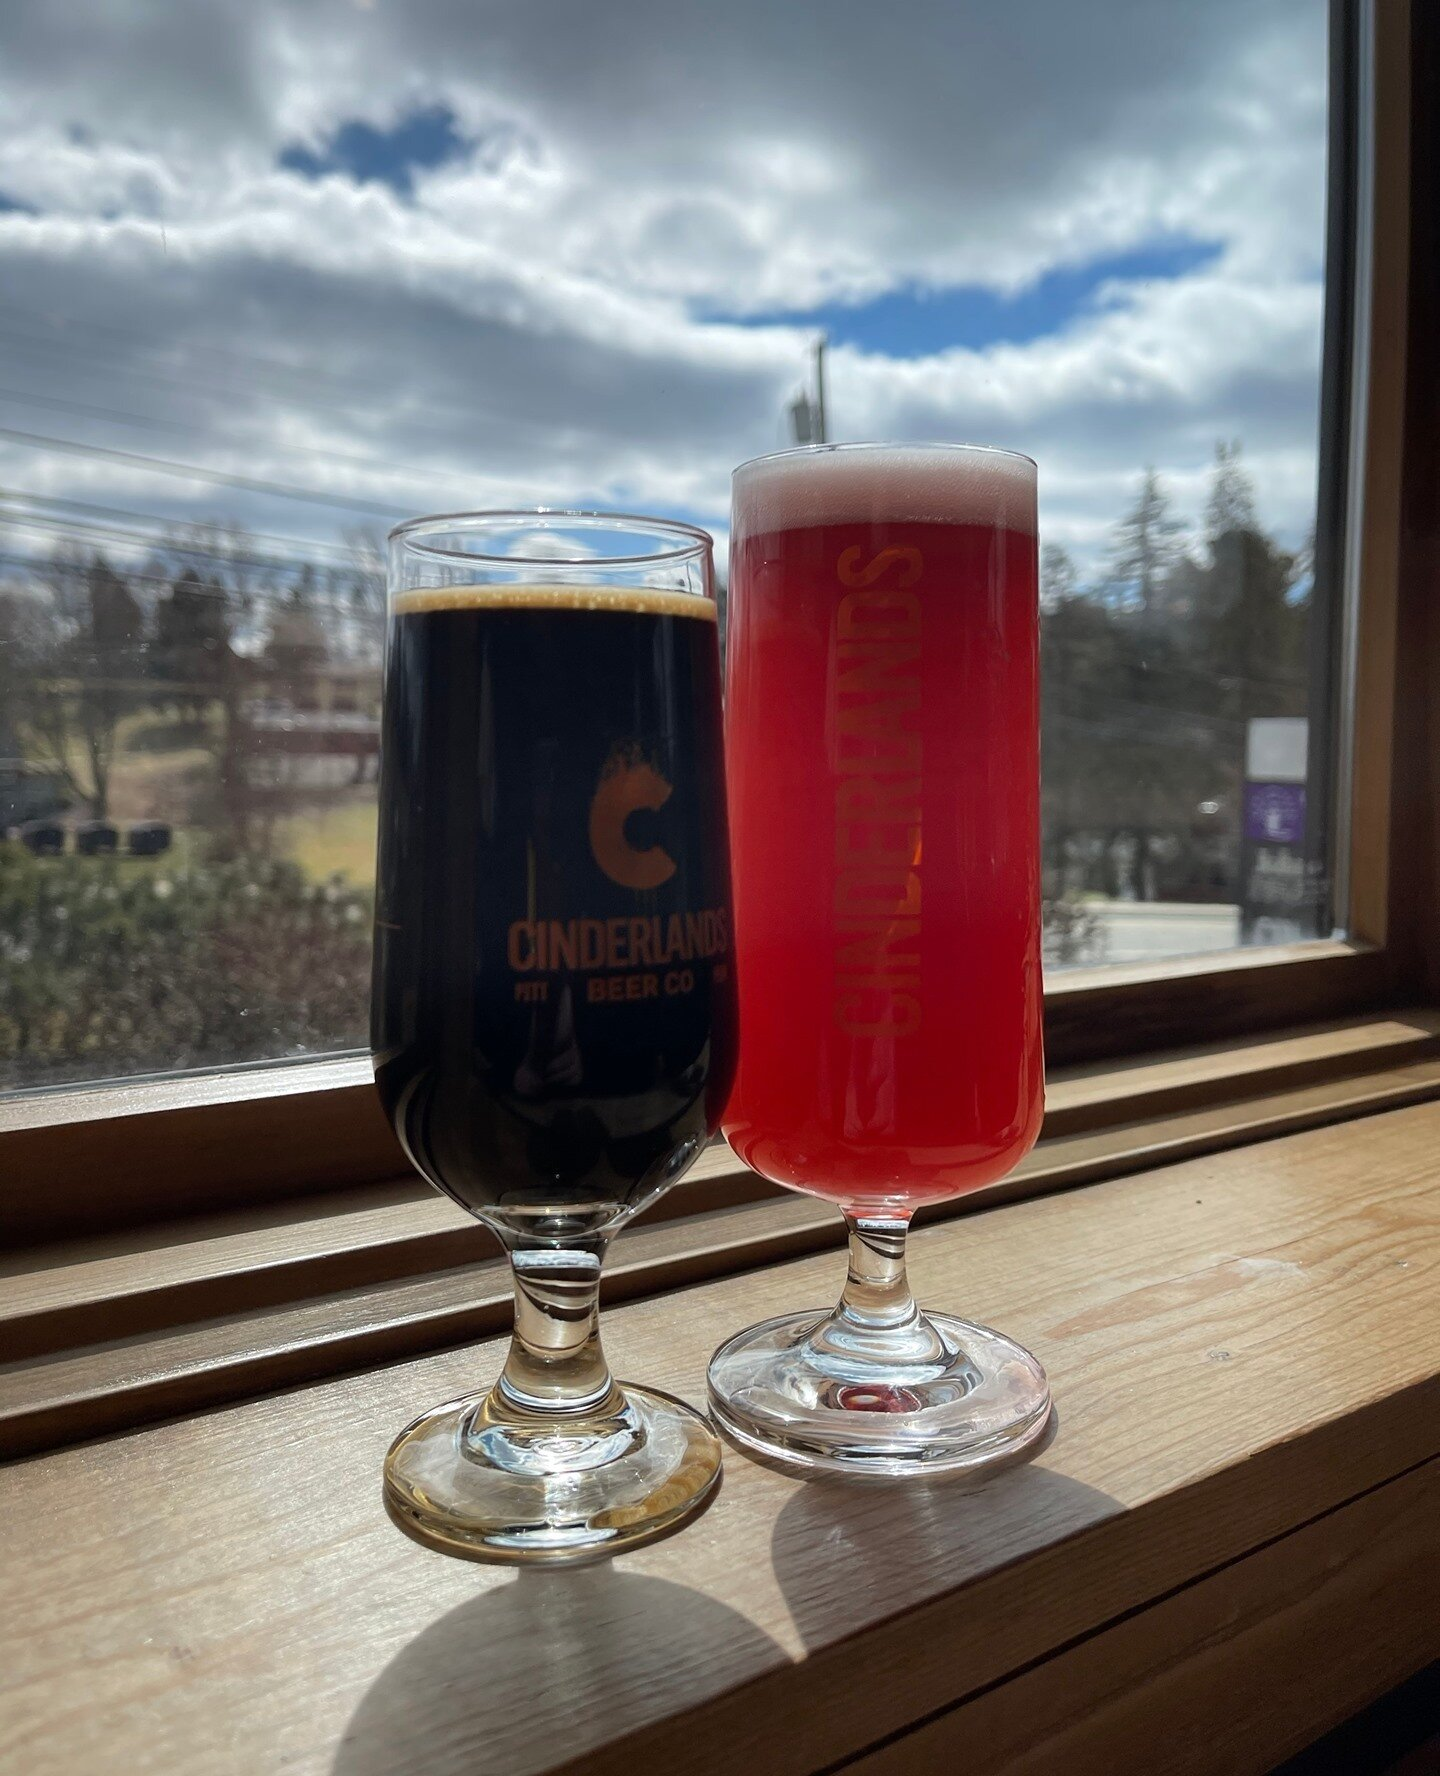 I mean all this sunshine calls for some beers! A quick visit to the new @cinderlandsbeer Tap Room in Wexford was fun and relaxing. They had great beers on and a few items to nibble on. We left with some beers for home and had a great time!